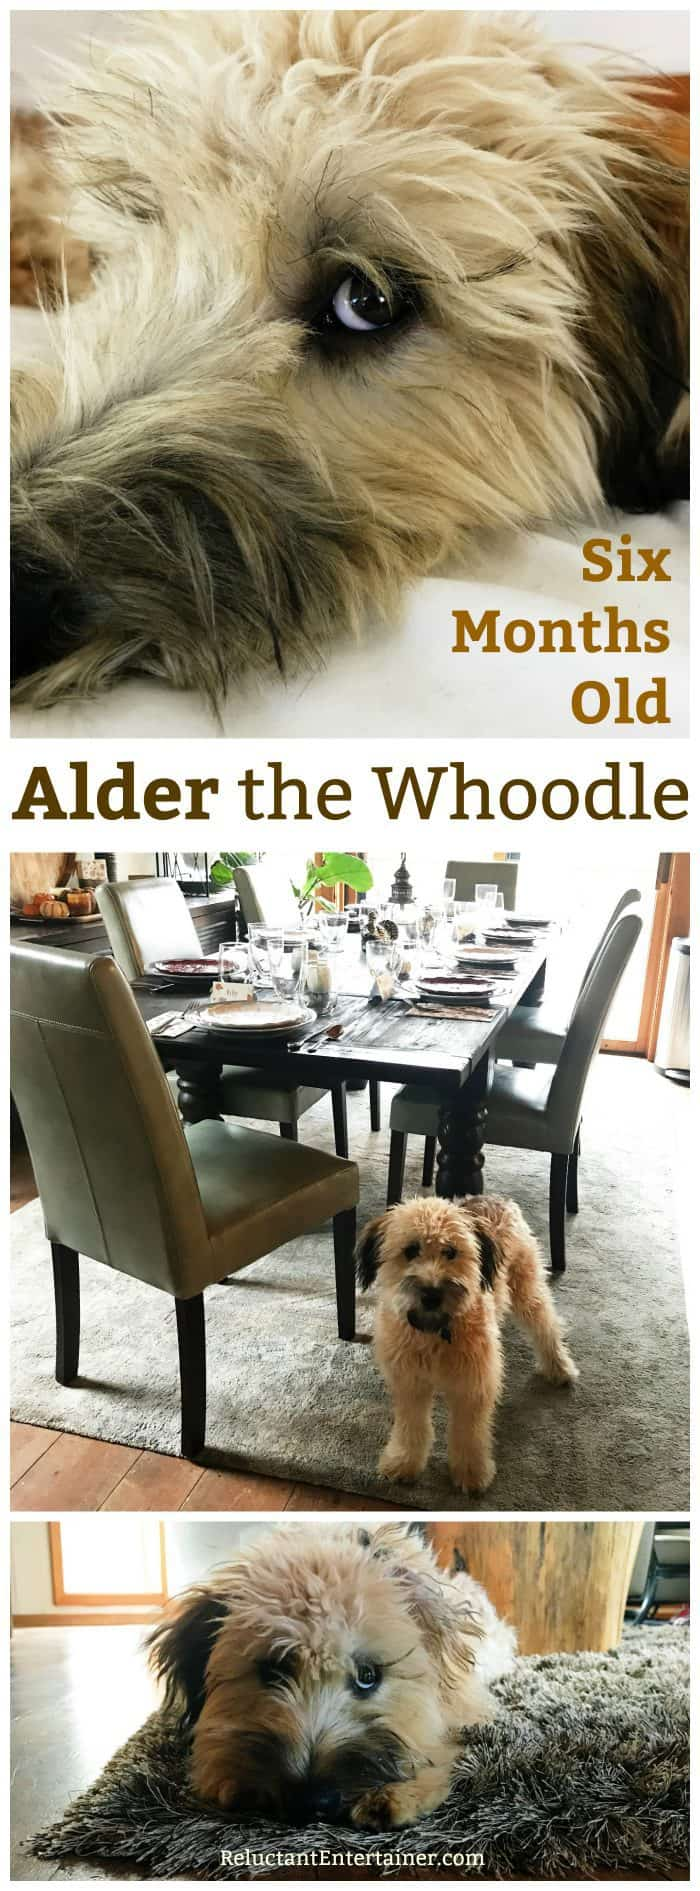 Alder the Whoodle: Six Months Old!